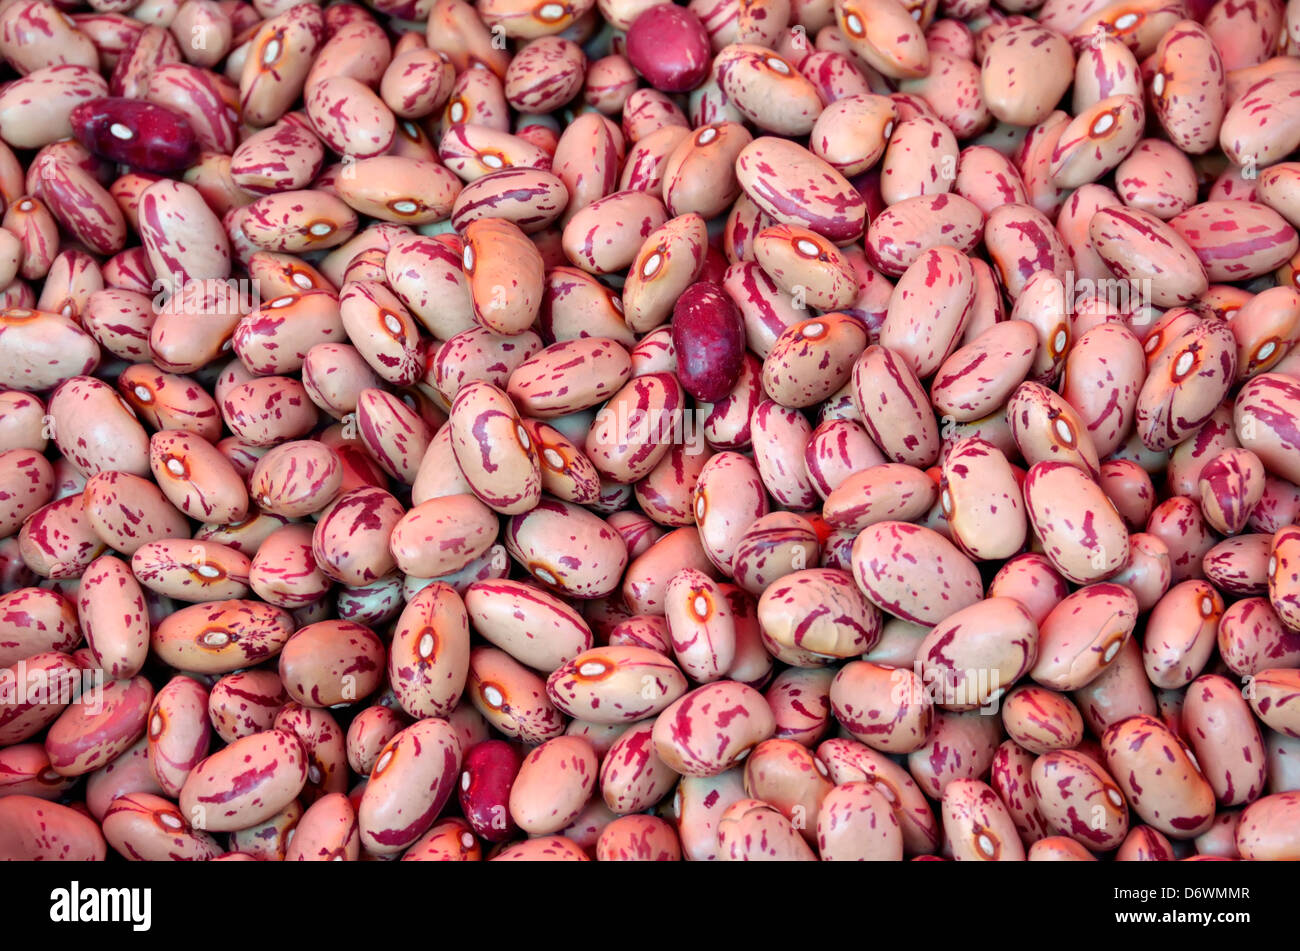 Beans for sale in the Ortygia market in Siracusa, Sicily, Italy. - Stock Image